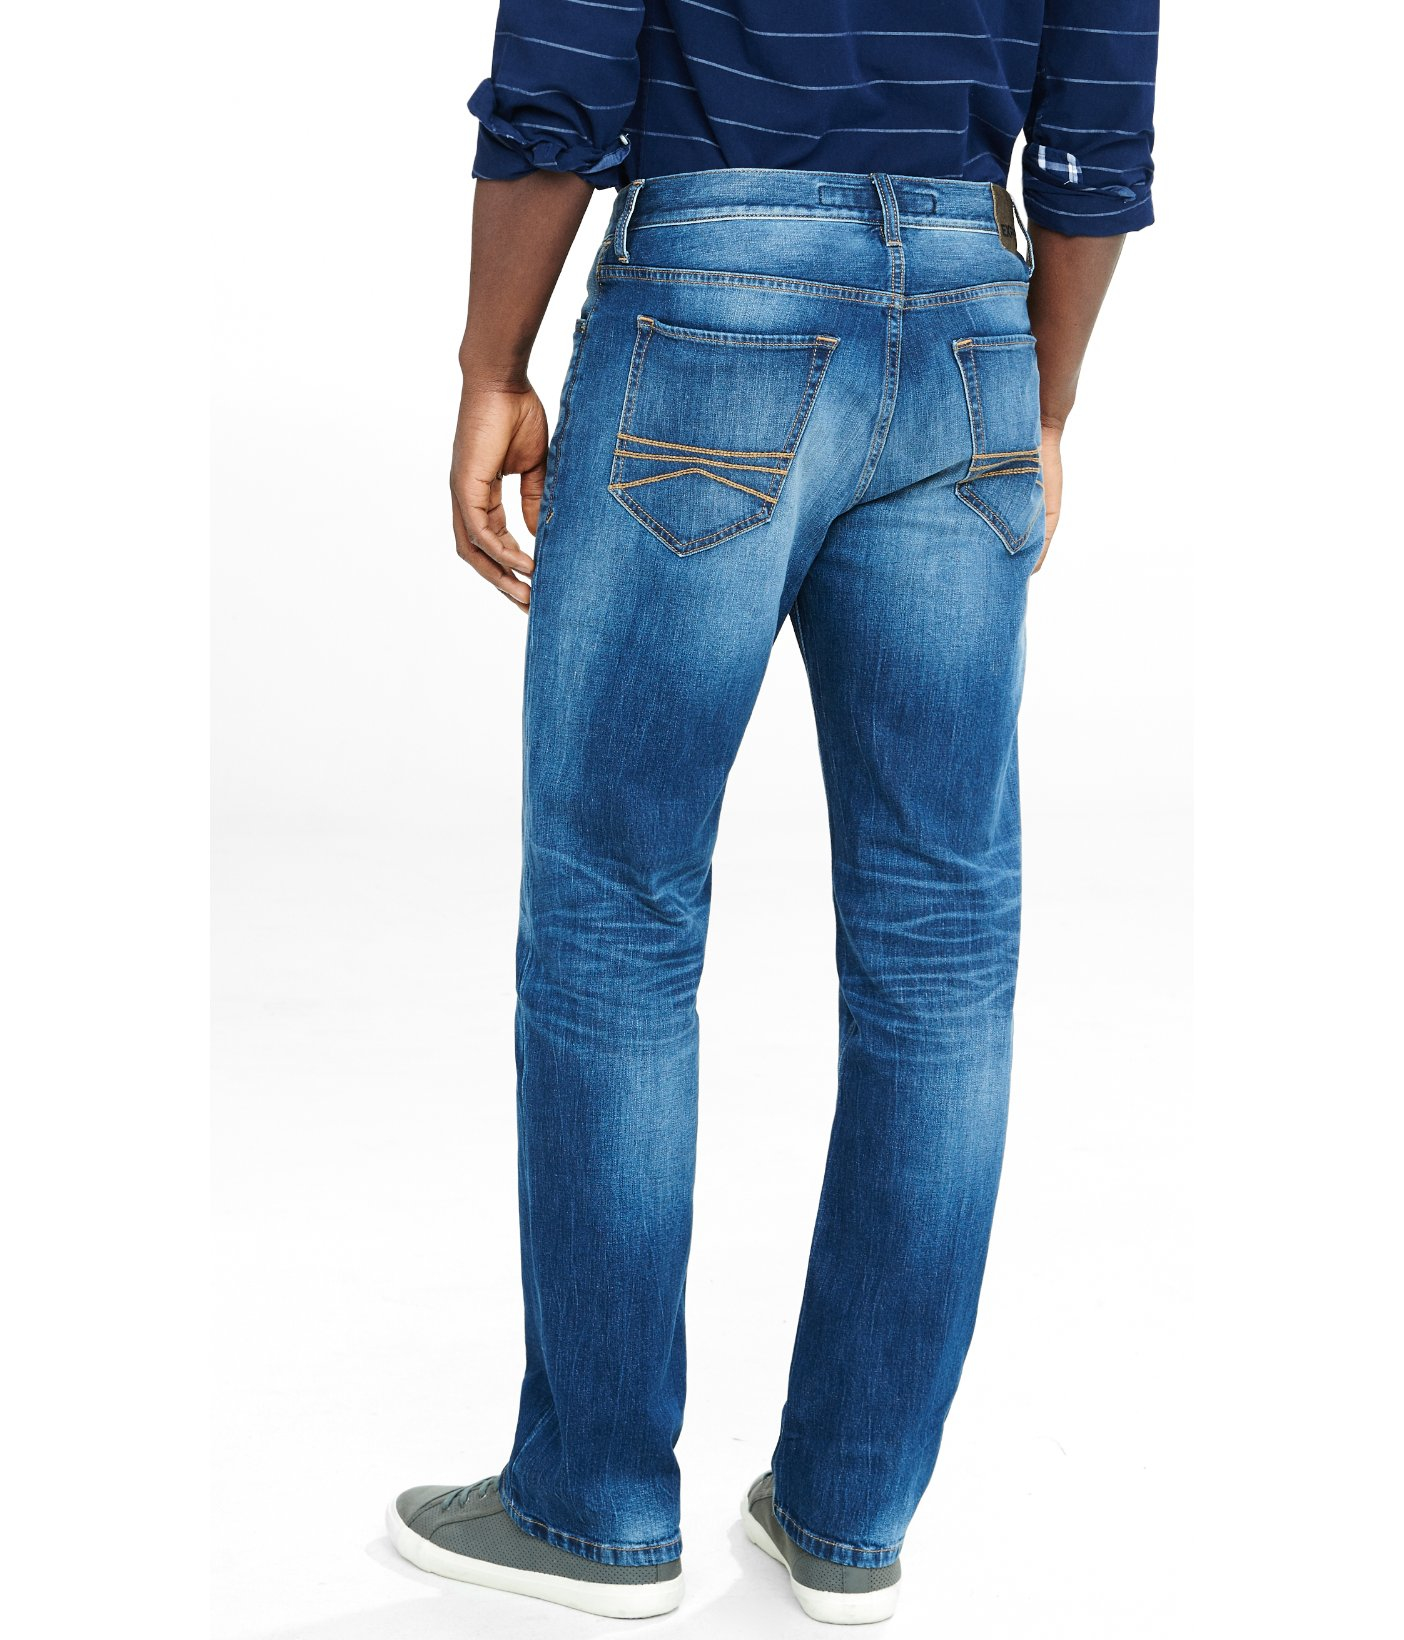 lyst express straight leg loose fit flex stretch jeans in blue for men. Black Bedroom Furniture Sets. Home Design Ideas